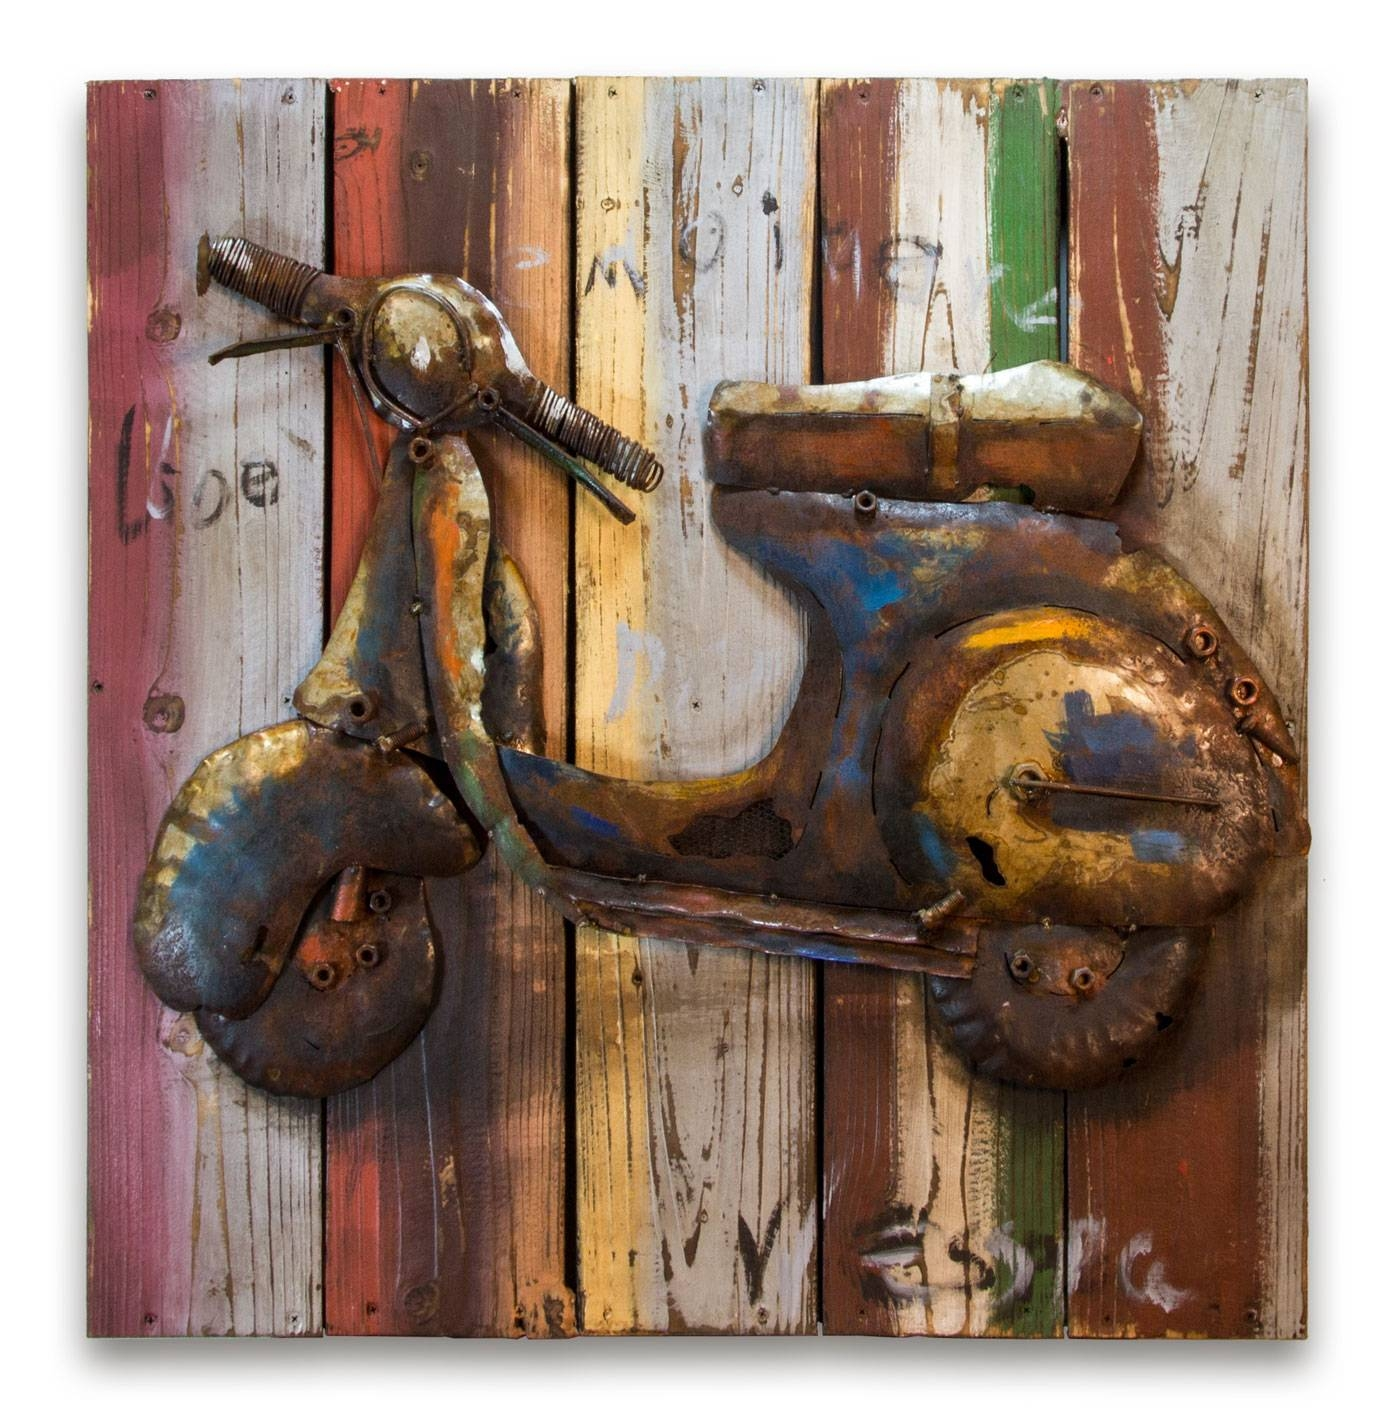 20 Best Ideas Italian Style Metal Wall Art: 20 Best Ideas Of Retro Metal Wall Art